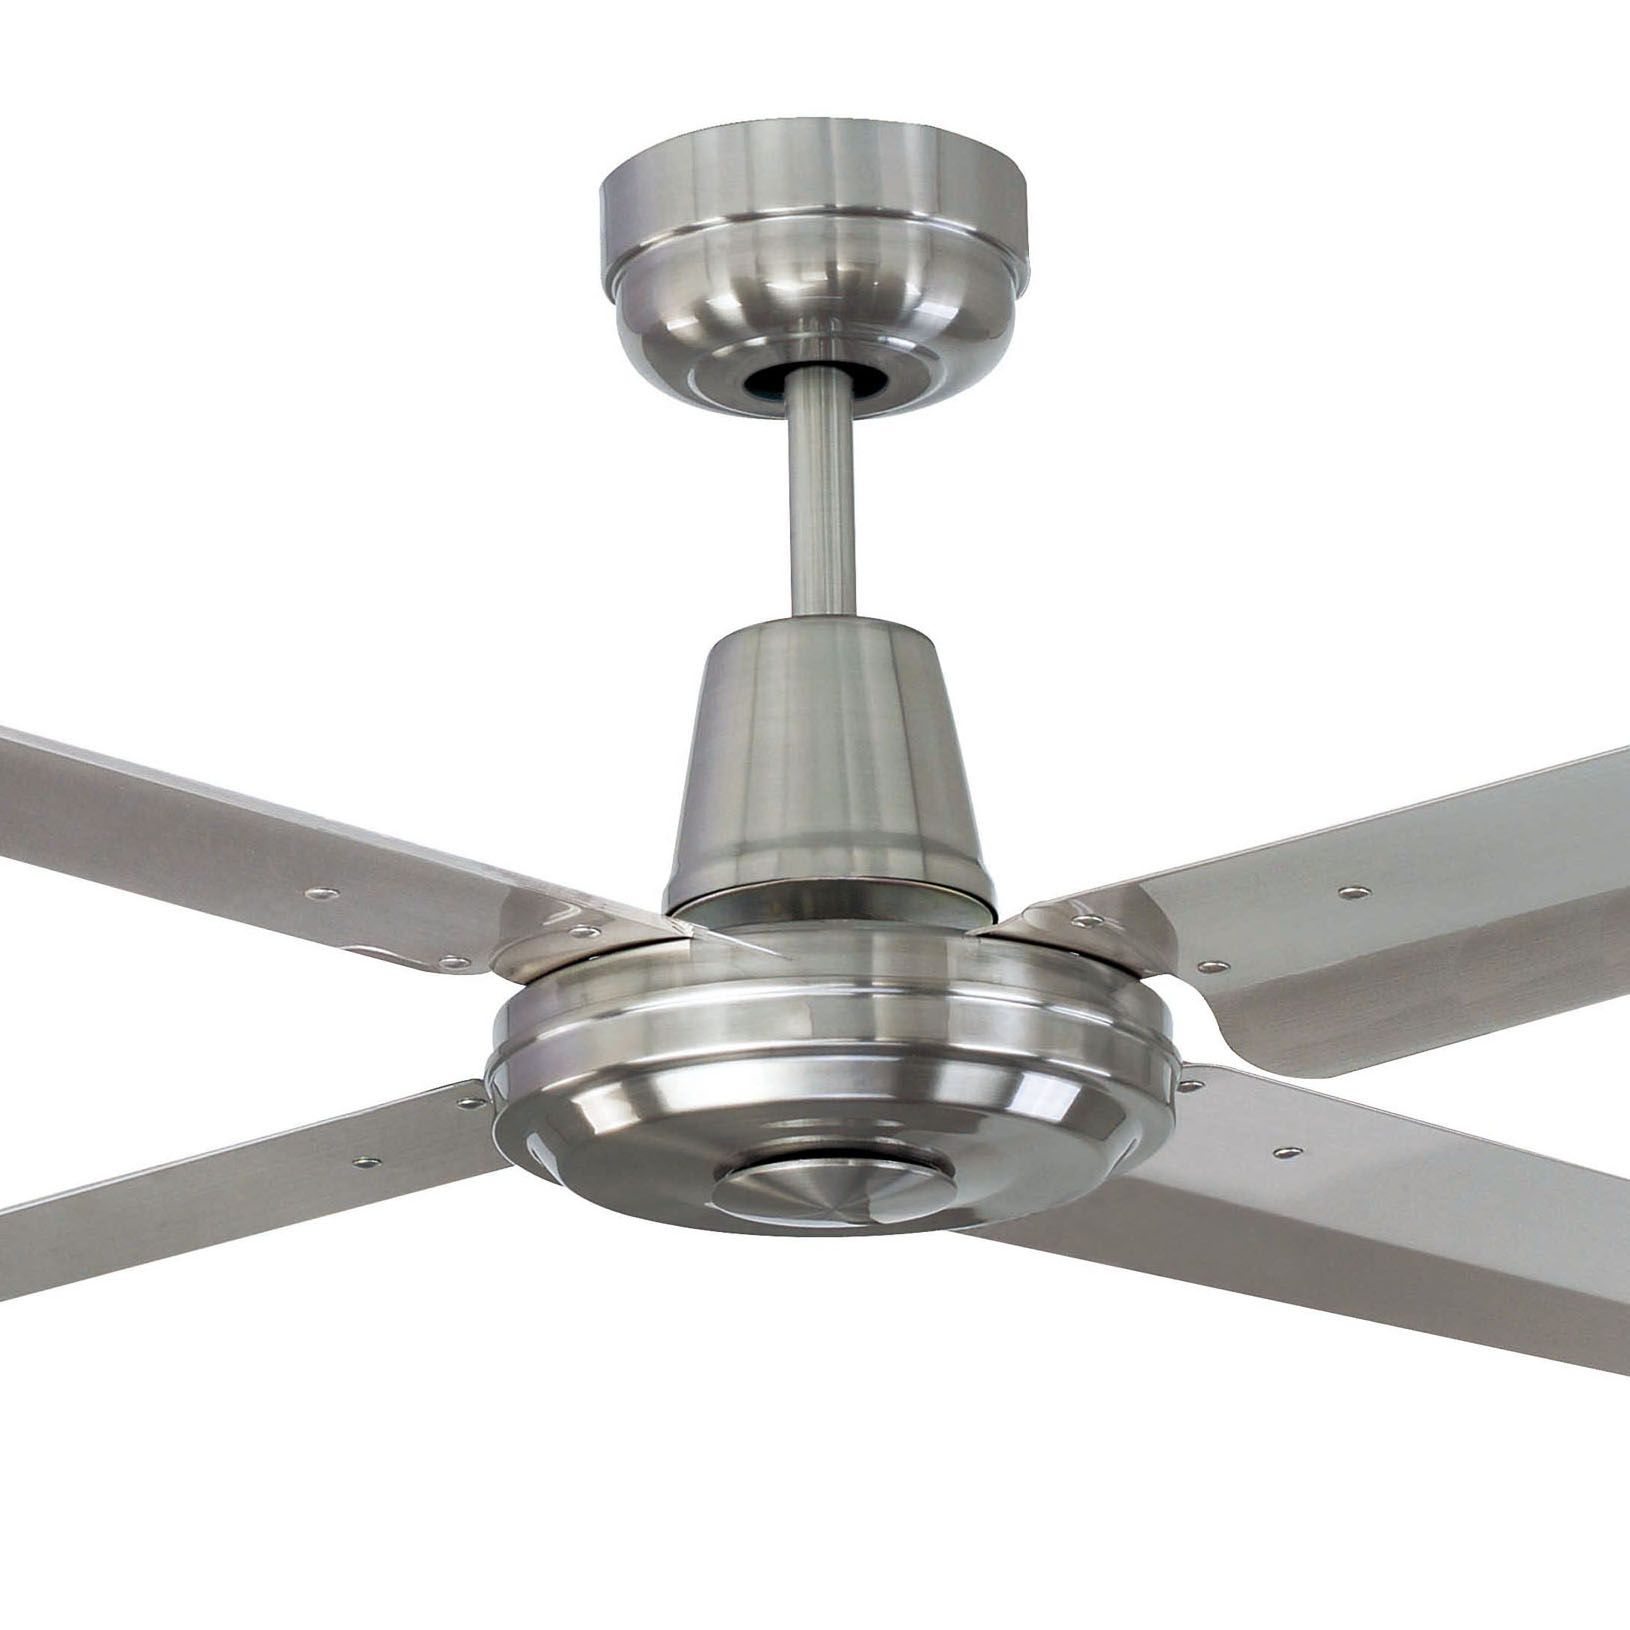 """The Swift 52"""" ceiling fan from Mercator is now available in a 316"""